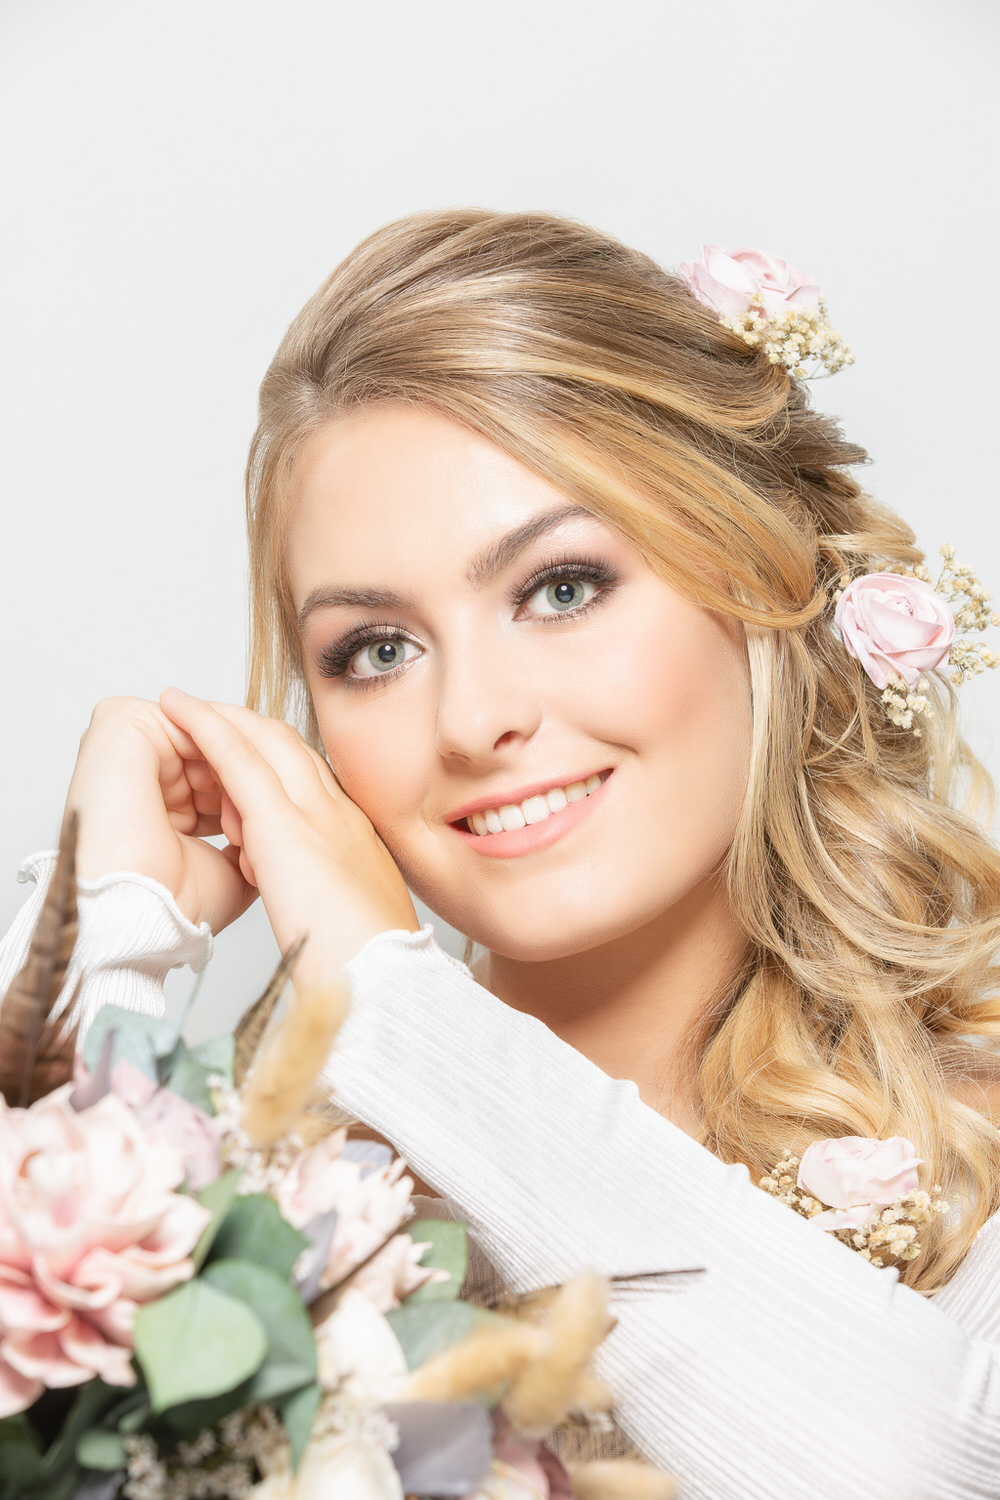 Portrait of a blonde haired bride sitting with her hair and makeup complete